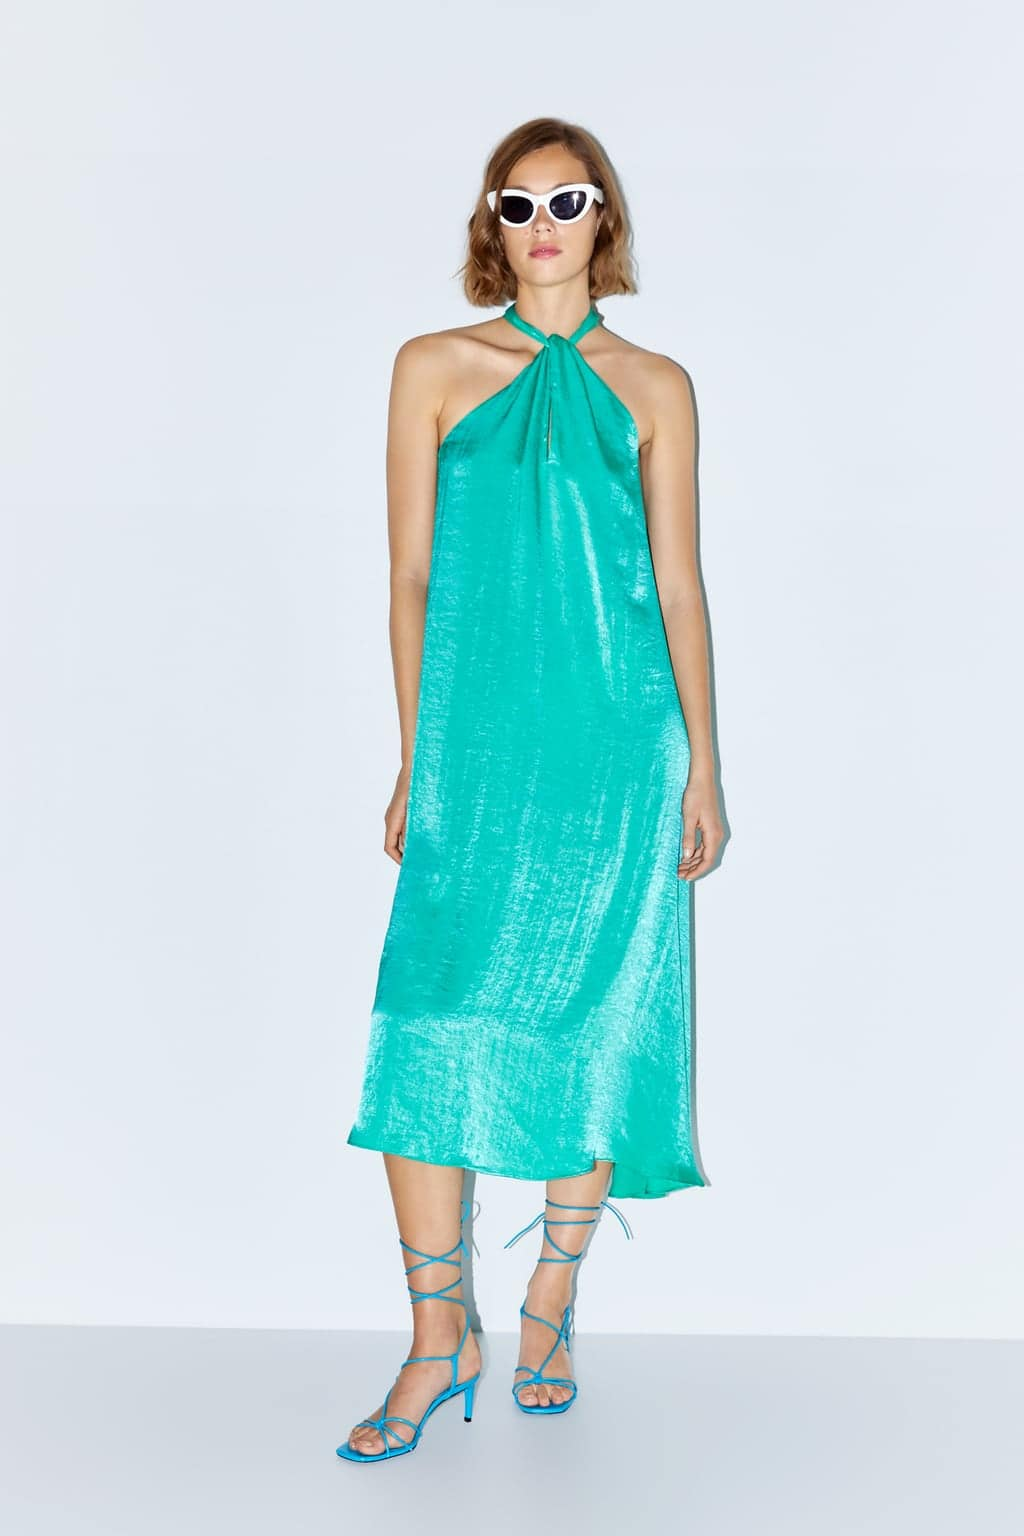 ZARA - Women's Clothing / Save Up to 70% Off Select Items online $19.99